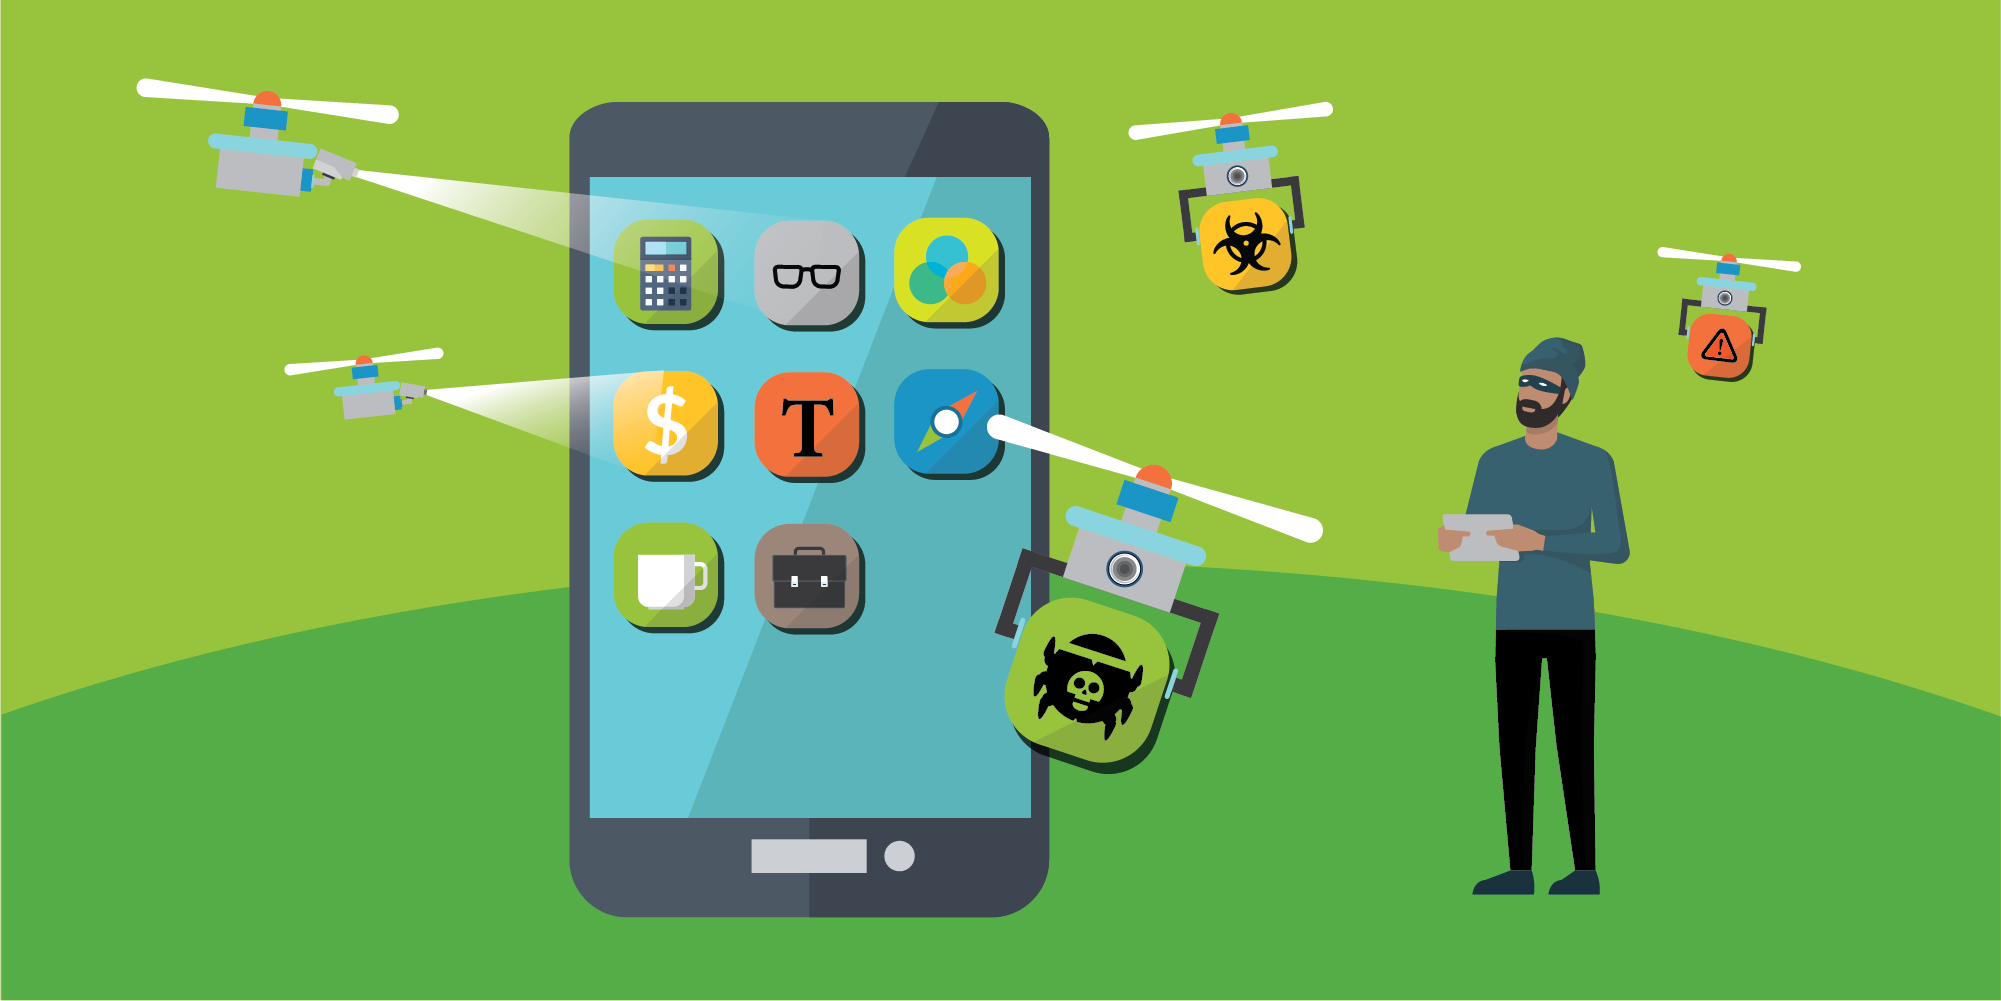 Data leakage from mobile applications, as illustrated here, can make users trackable and open them to malicious attacks. The image shows a mobile device screen and icons representing attackers hovering around the device monitoring for leakage.